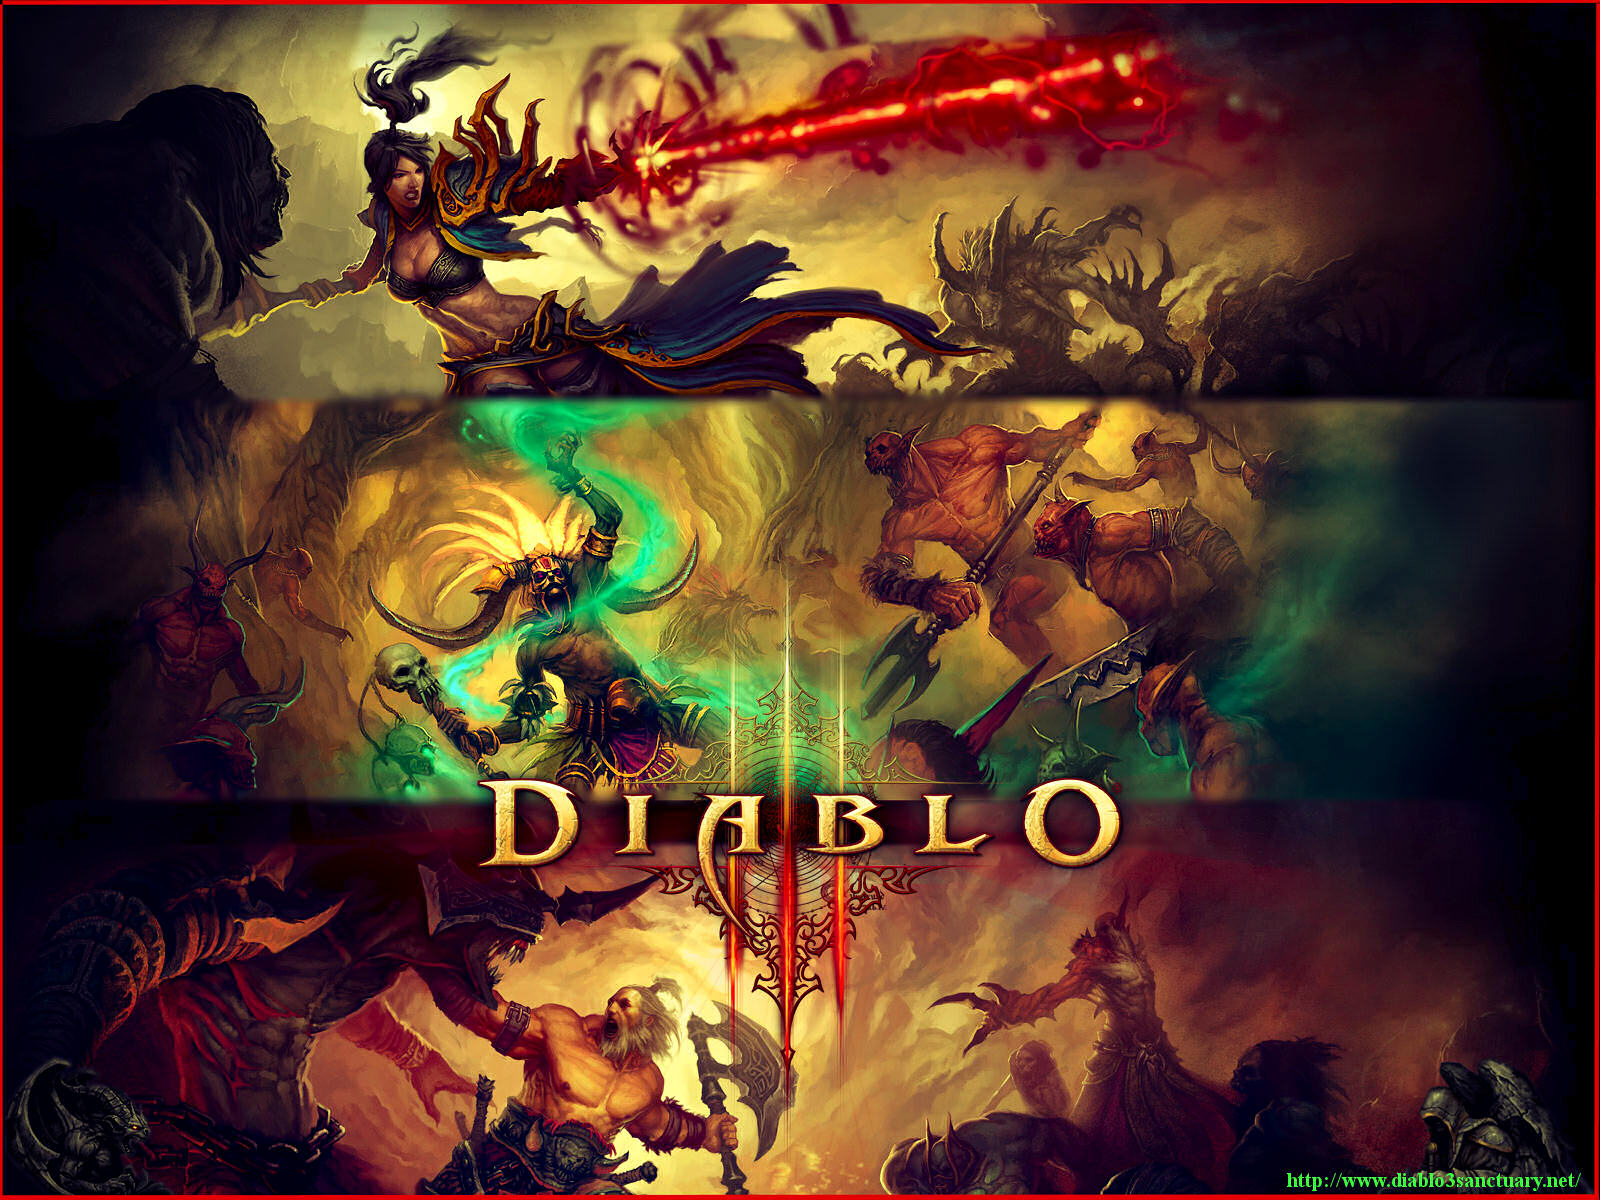 Diablo 3 Wallpapers All 3 Caracters Wizard Witch Doctor Barbarian 1600x1200